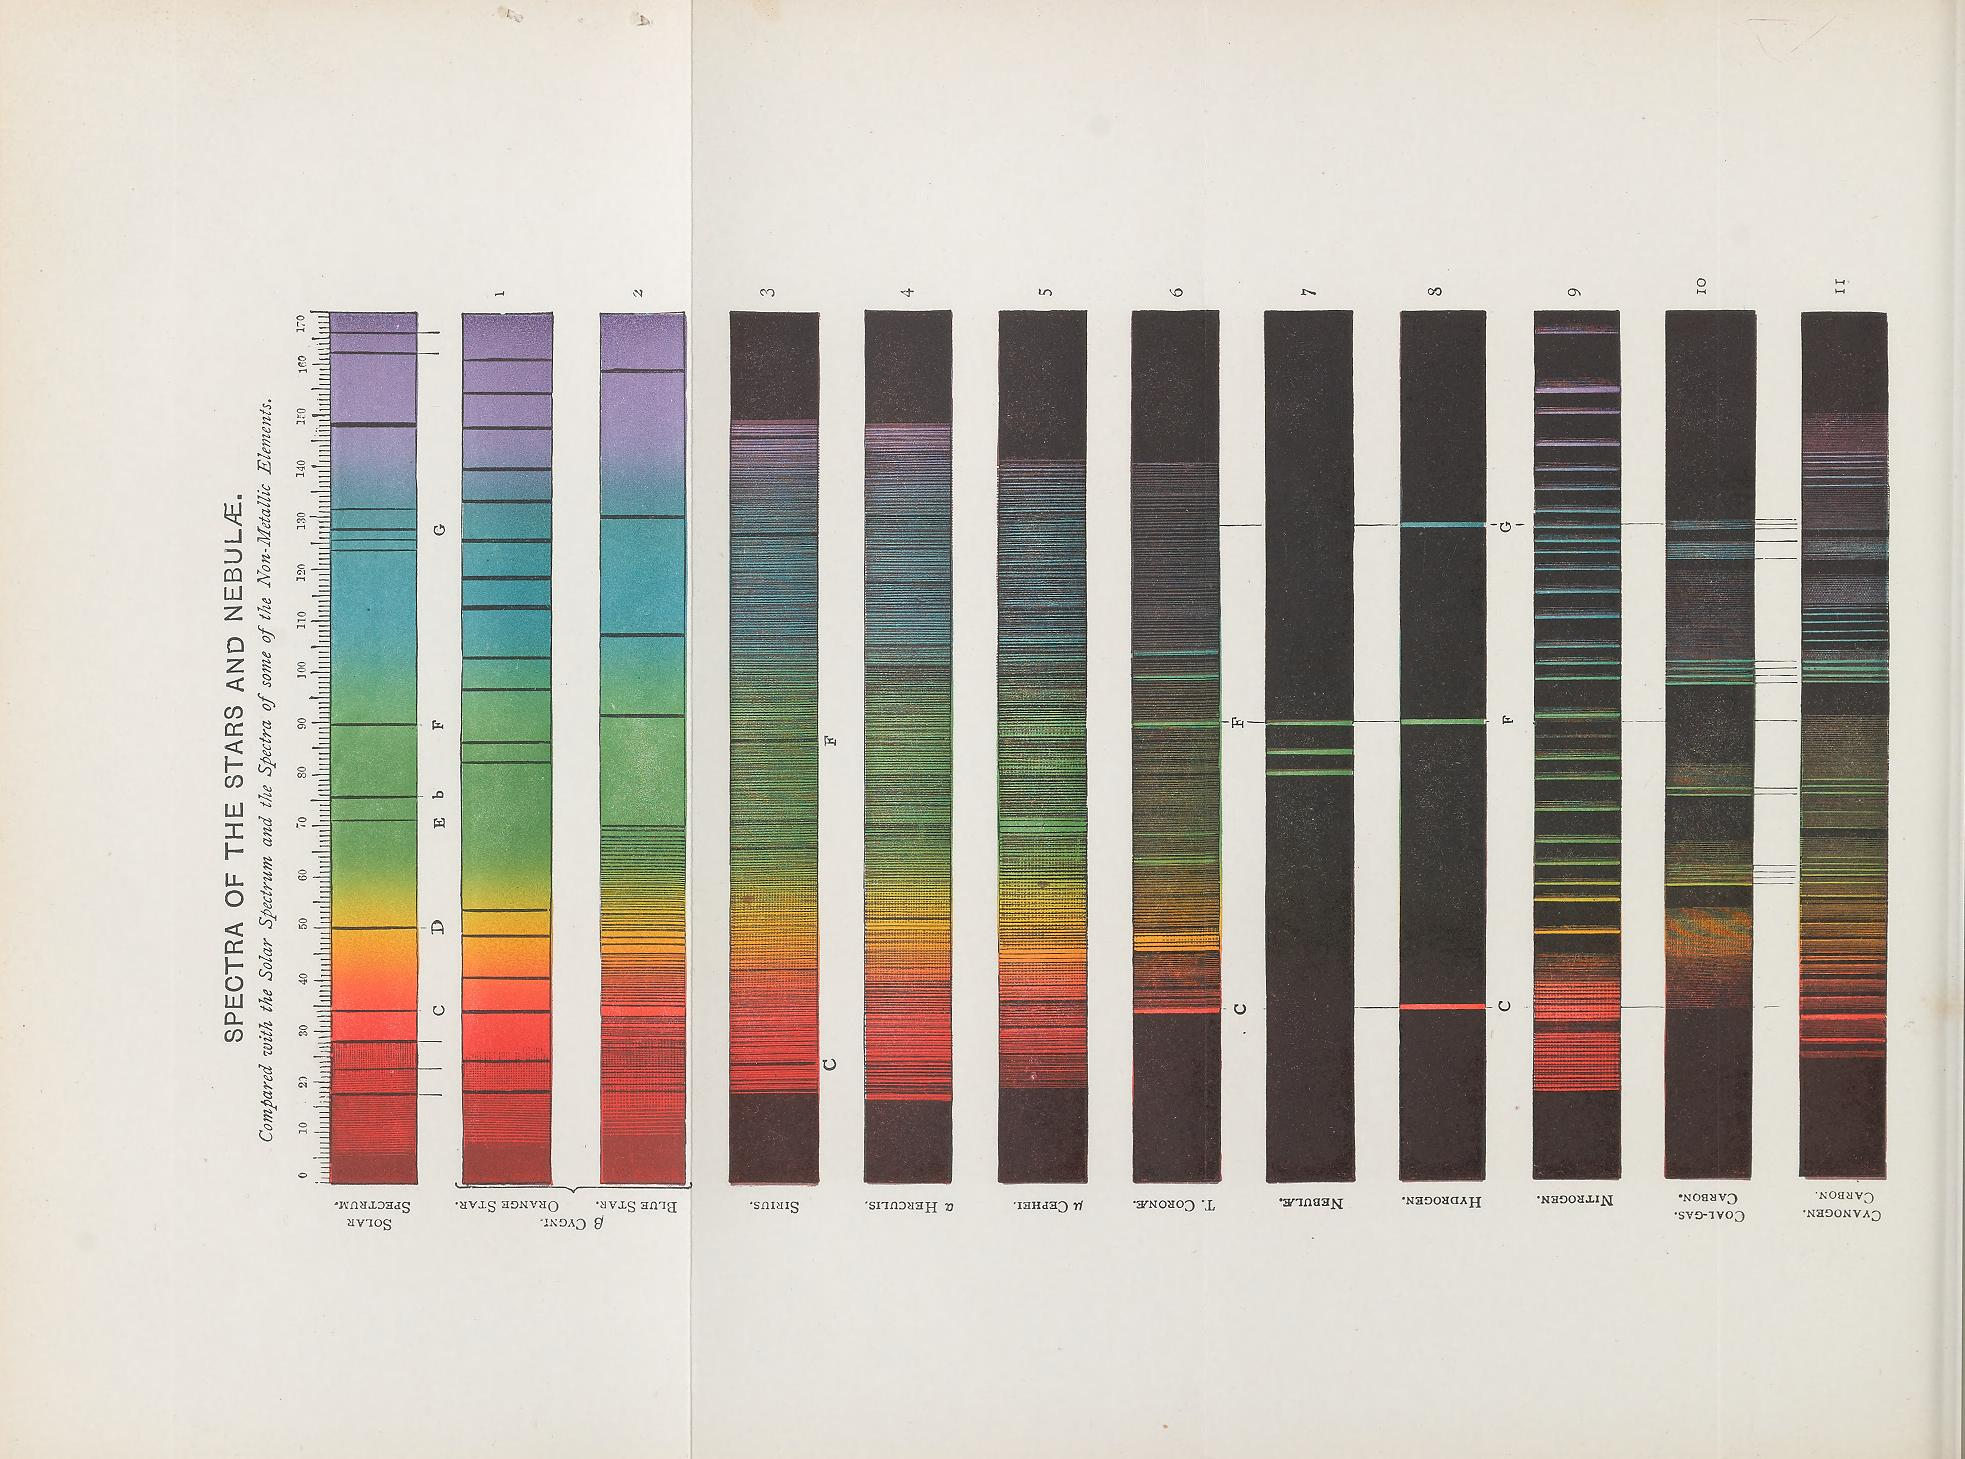 There Is A Fold Out Page Of Book Showing Twelve Spectrum Bars The First Three